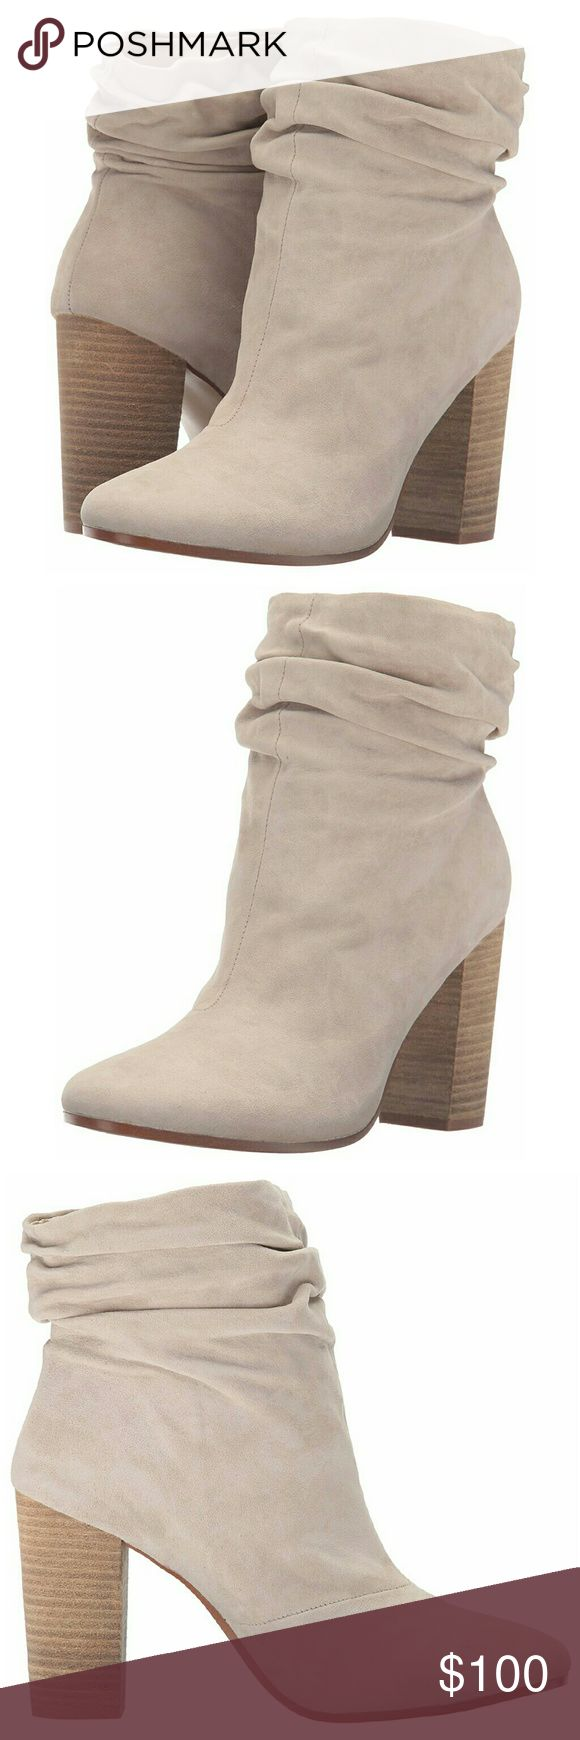 *NEW* Chinese Laundry Kristin Cavallari Boot New in Box Chinese Laundry Kristin Cavallari Women's Georgie Suede Slouch Boot -Slouchy mid calf boot/bootie Size: 7.5, Color: Grey - Suede (color looks similar to light tan/nude, first 3 pictures show the color best) -100% Kid Suede -Heel measures approx 4in Chinese Laundry Shoes Ankle Boots & Booties